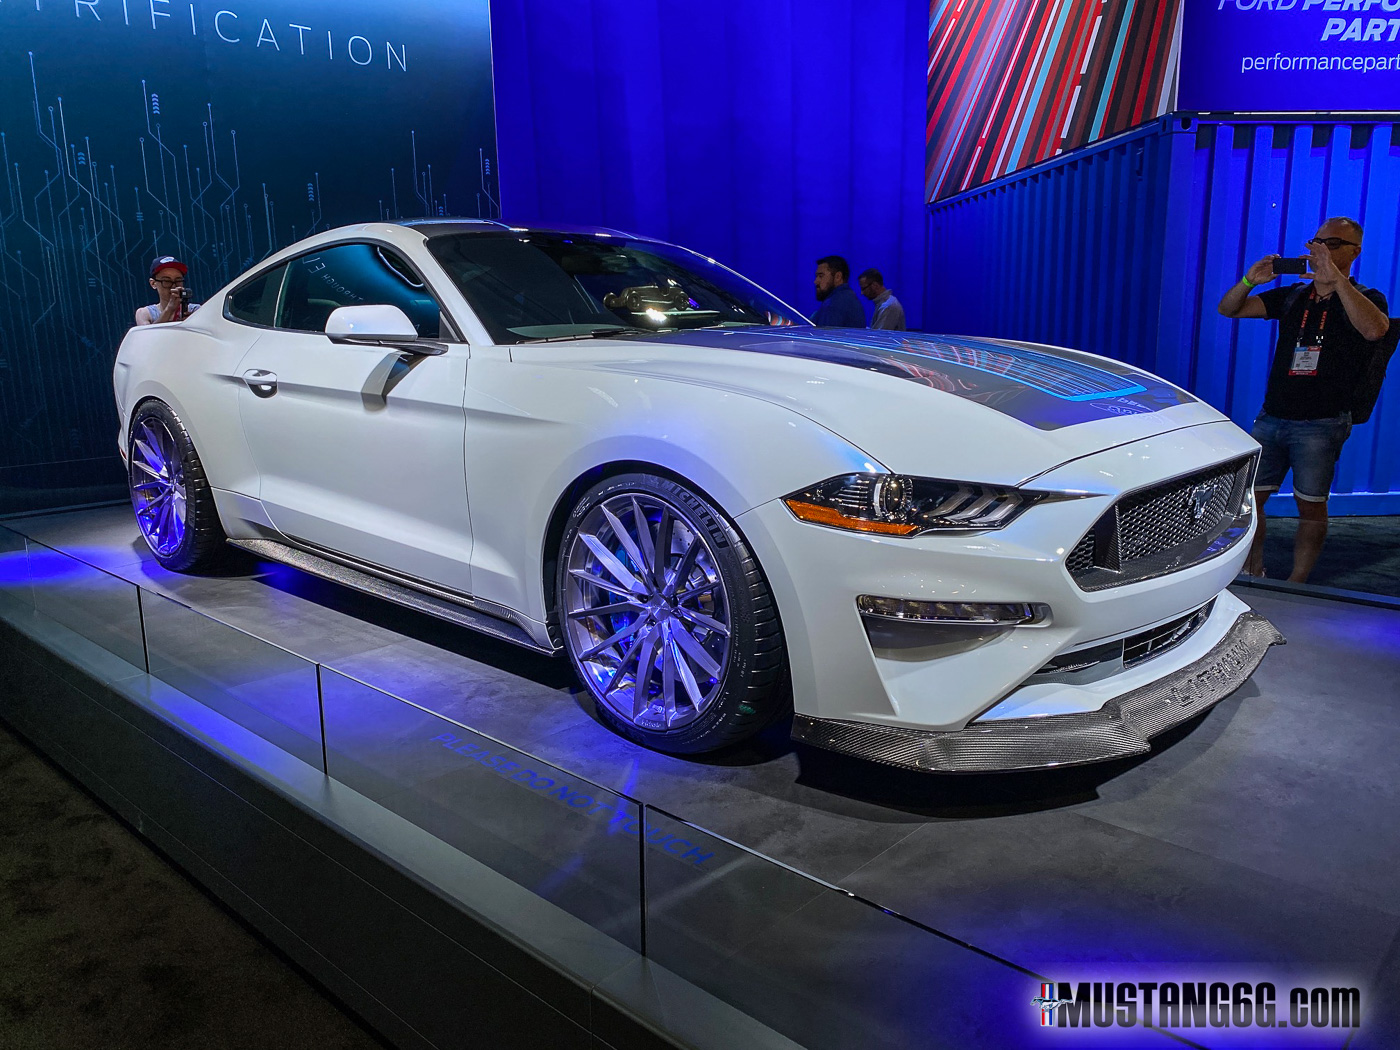 Mustang Quot Lithium Quot Battery Electric Prototype Signals